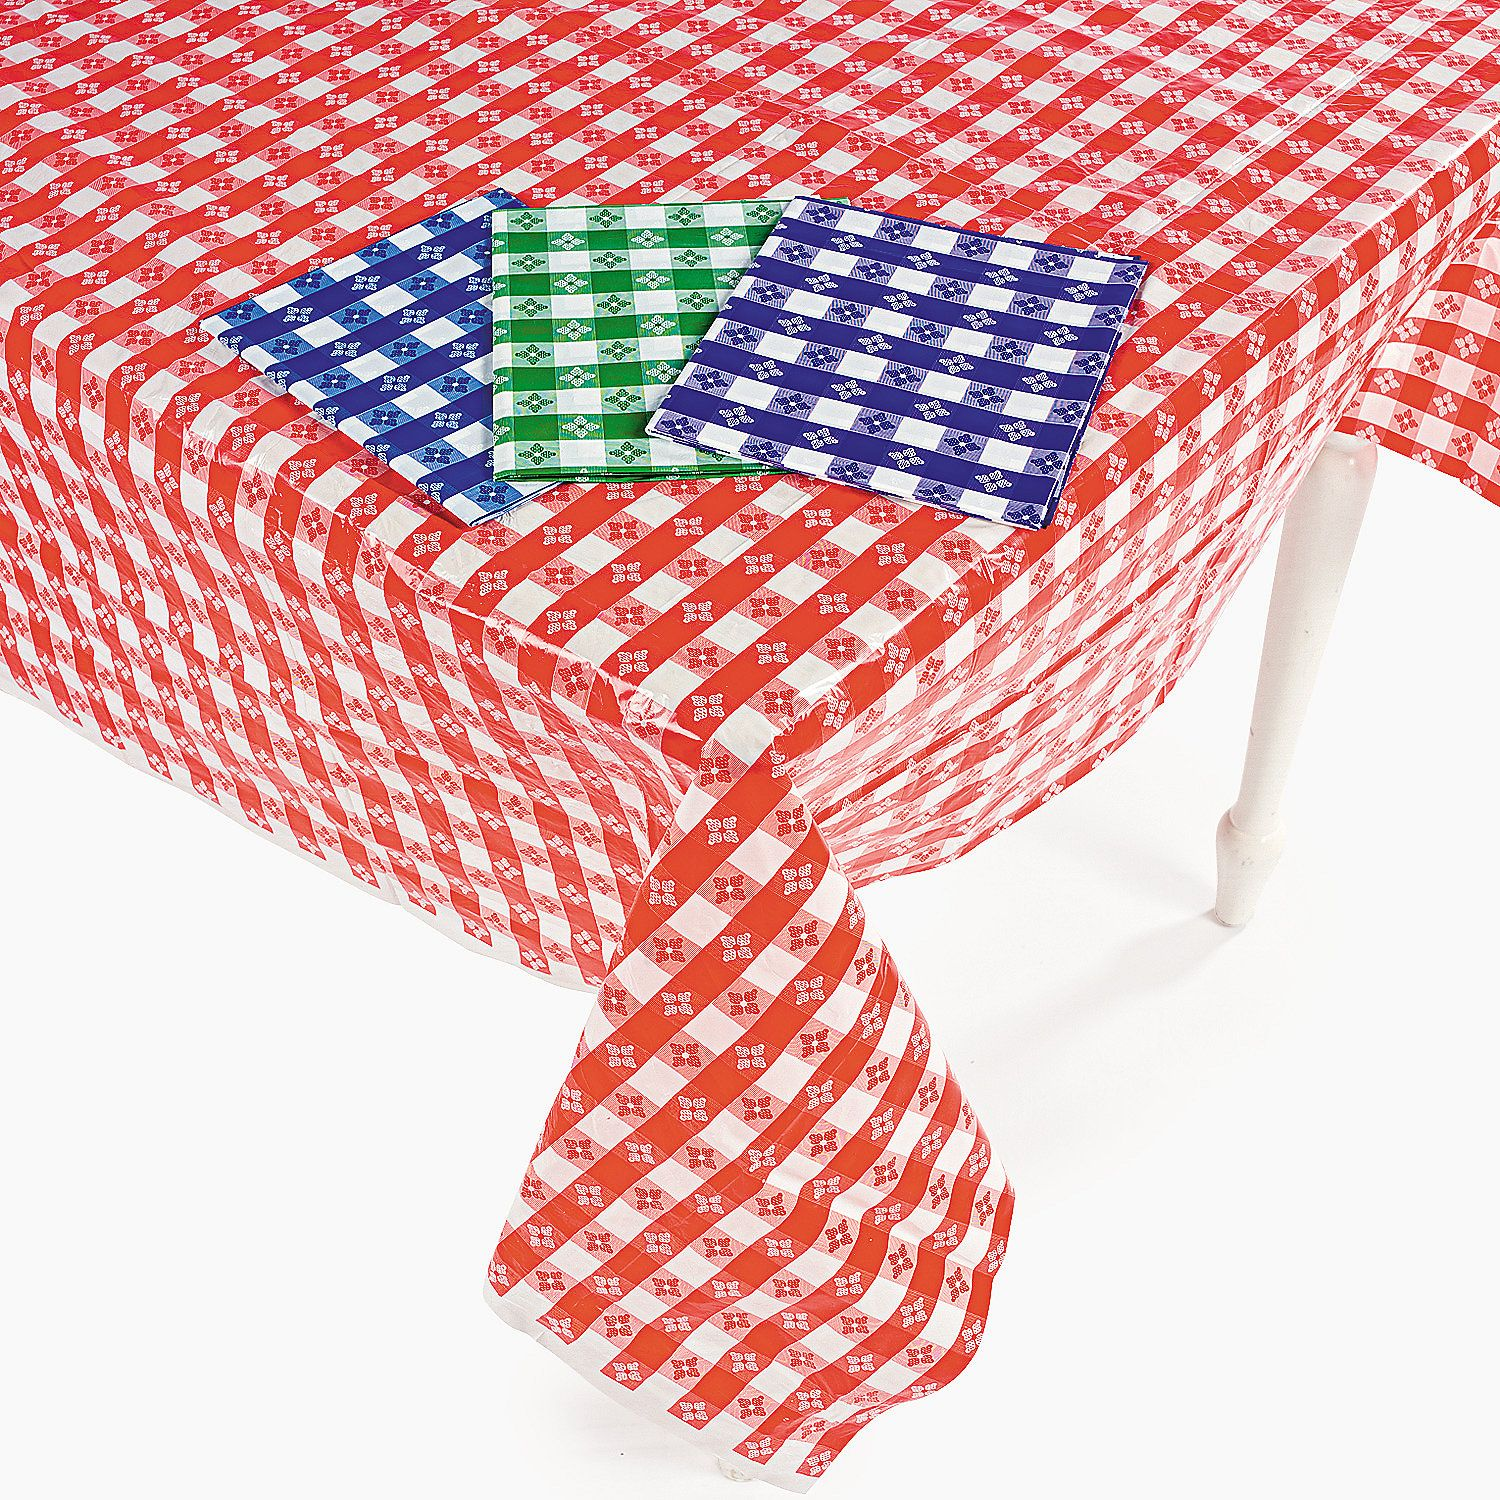 Disposable Checkered Tablecloths Red Blue Green Purple